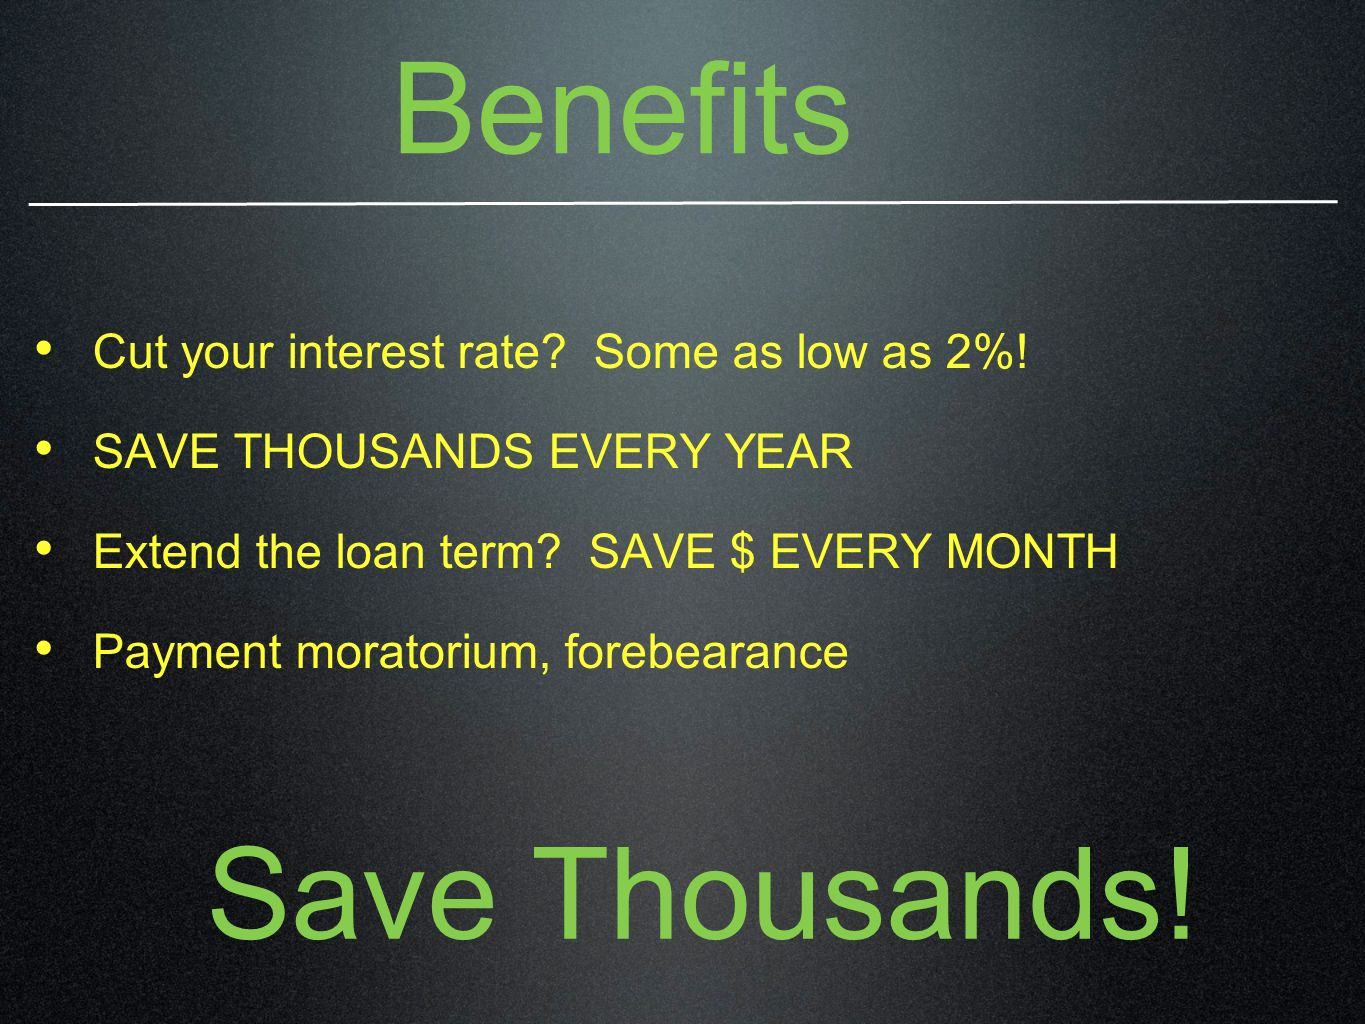 Benefits Cut your interest rate? Some as low as 2%! SAVE THOUSANDS EVERY YEAR Extend the loan term? SAVE $ EVERY MONTH Payment moratorium, forebearanc